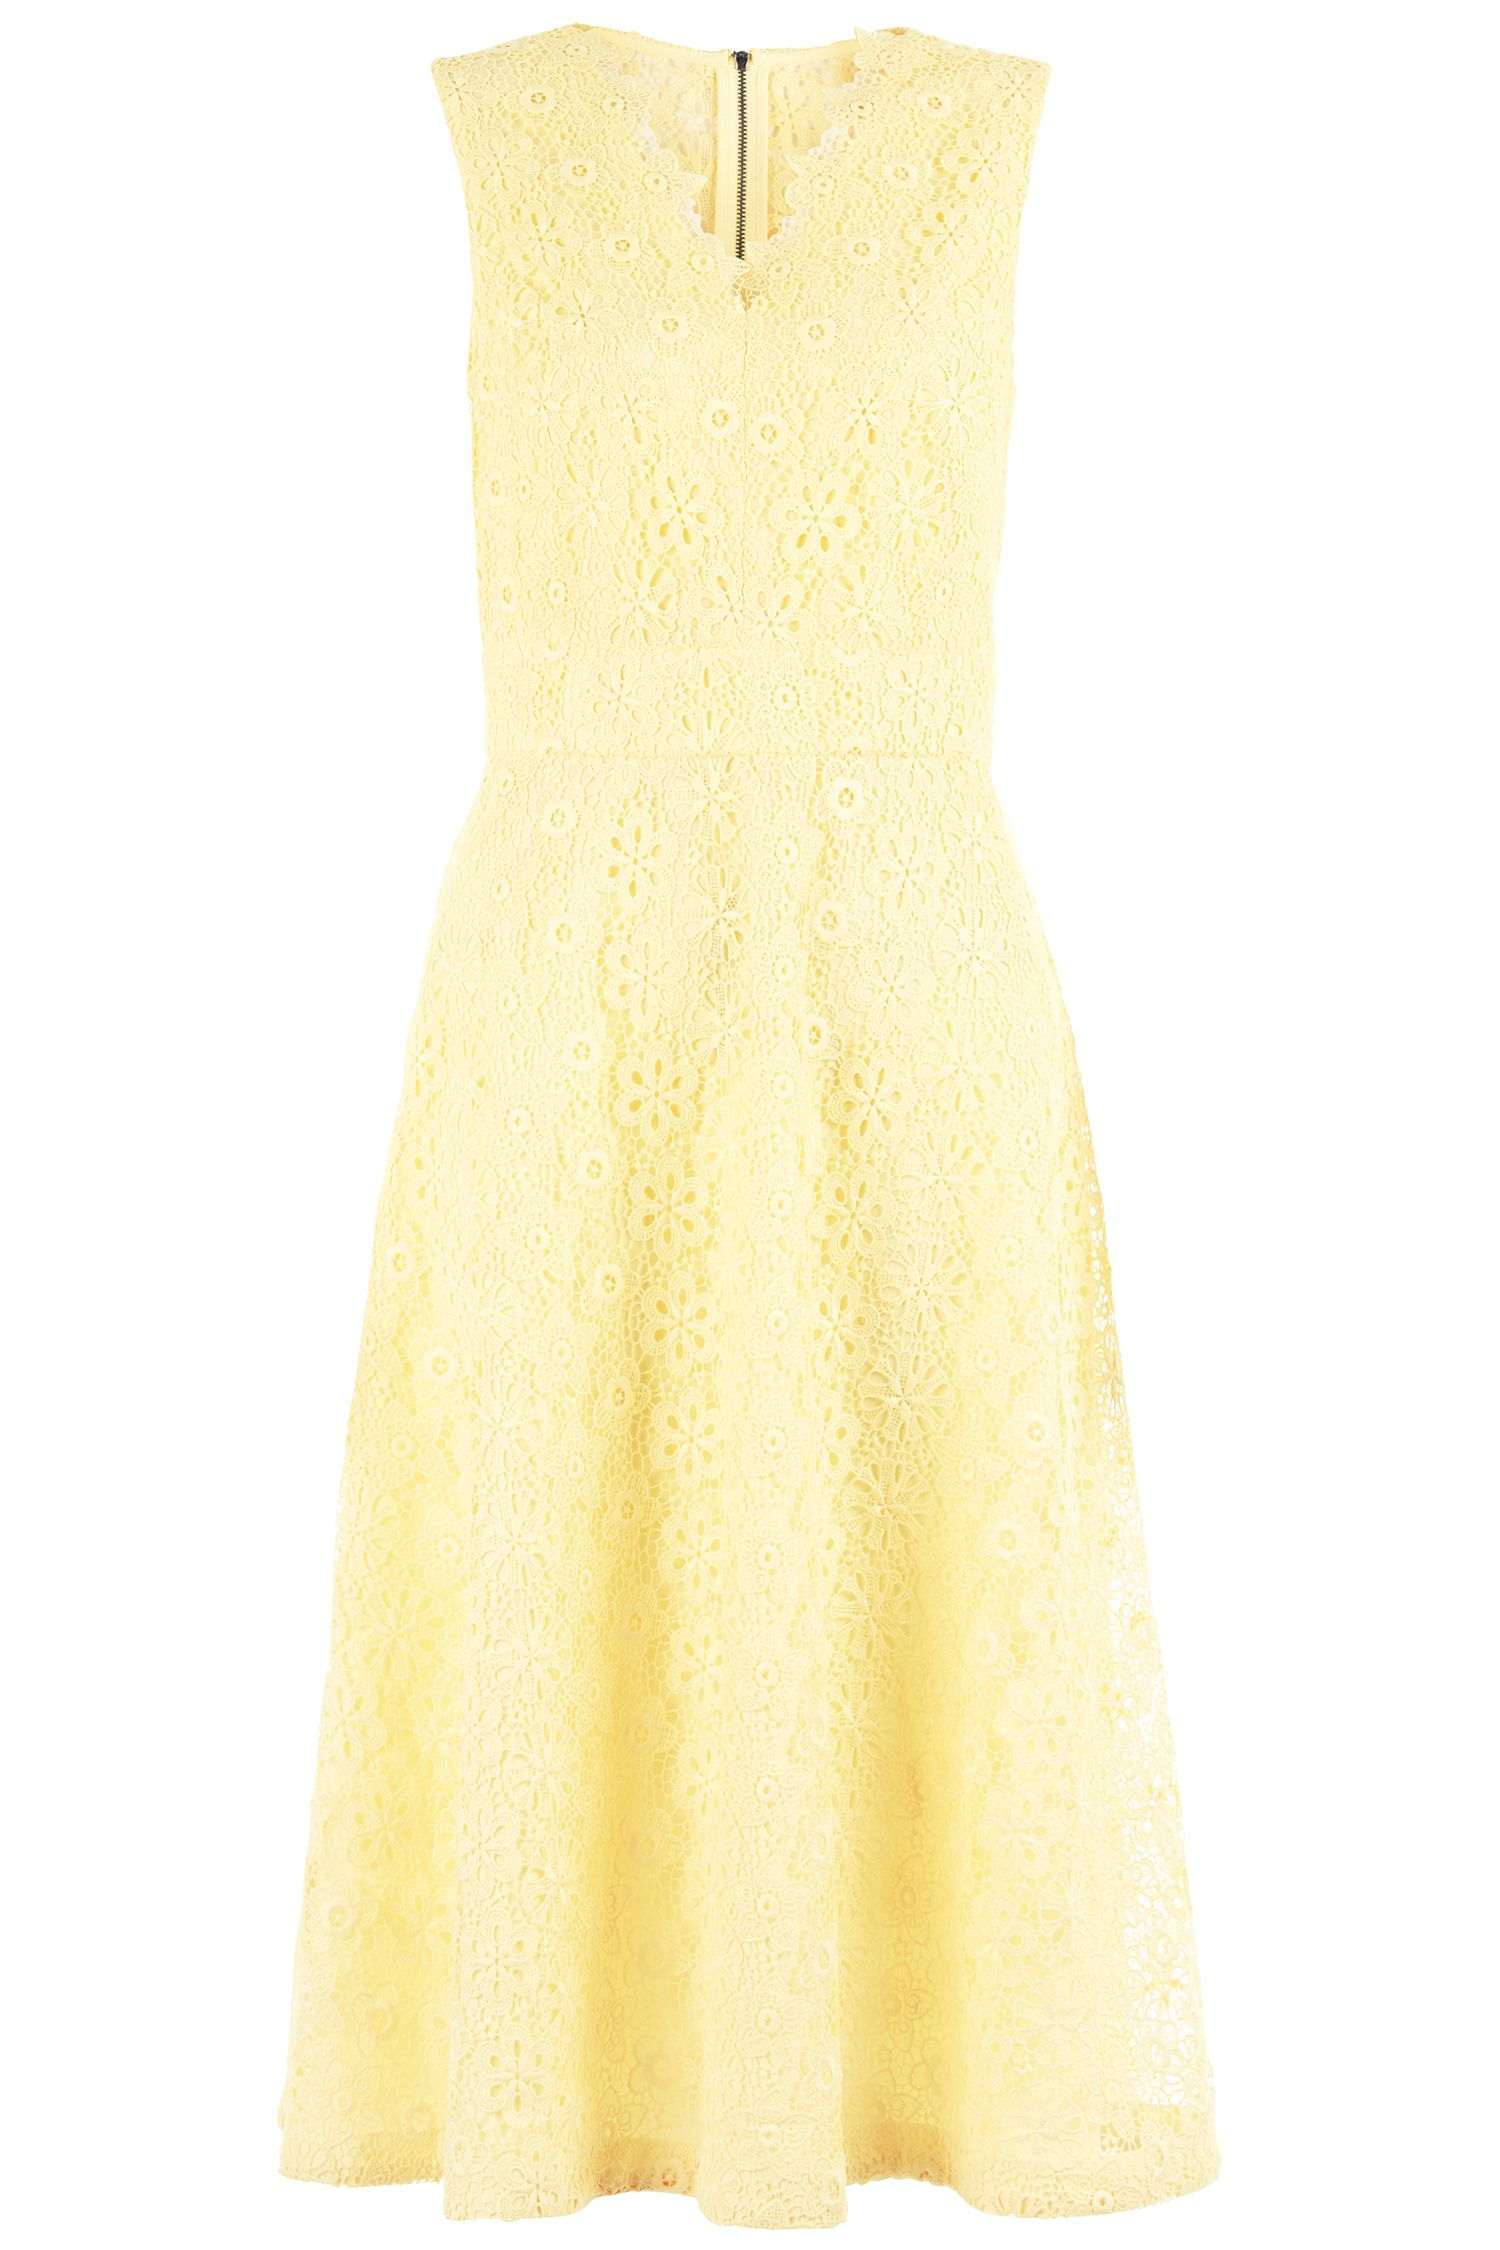 Damsel in a Dress Lace Dress, Lemon